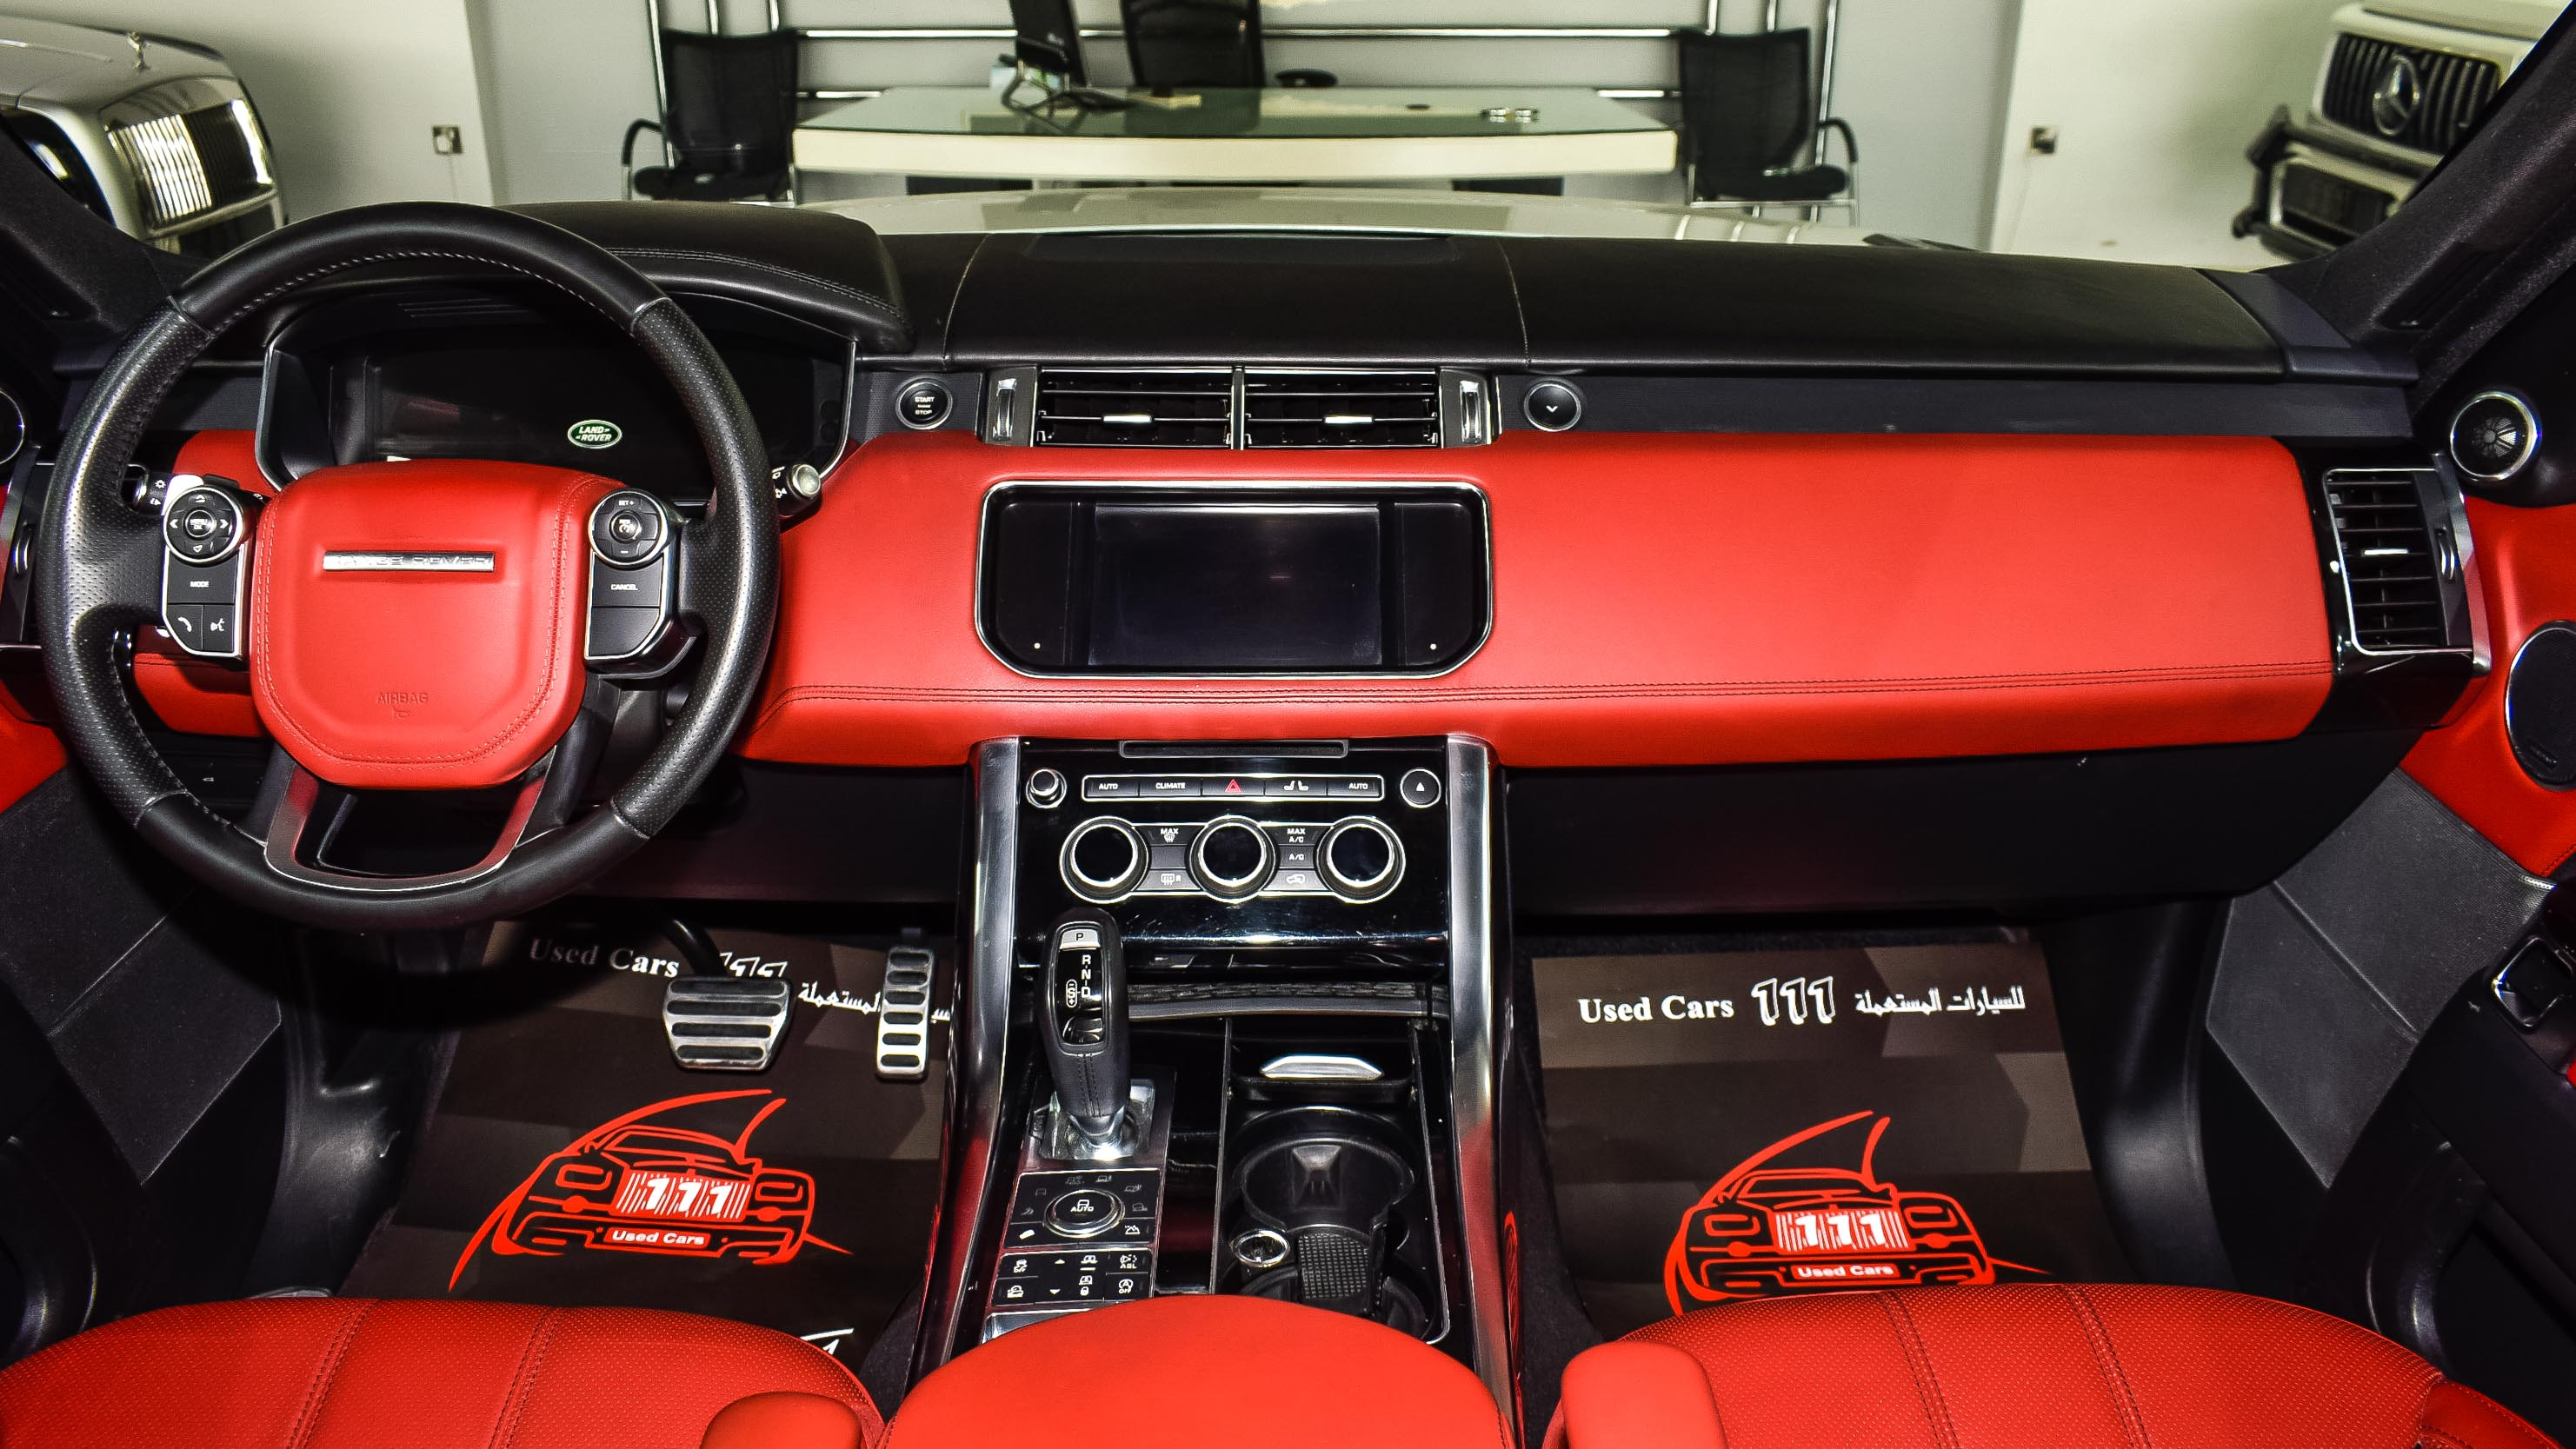 2016-Range-Rover-Sport-Supercharged-With-Sport-Autobiography-Badge-White-Red-06.jpg